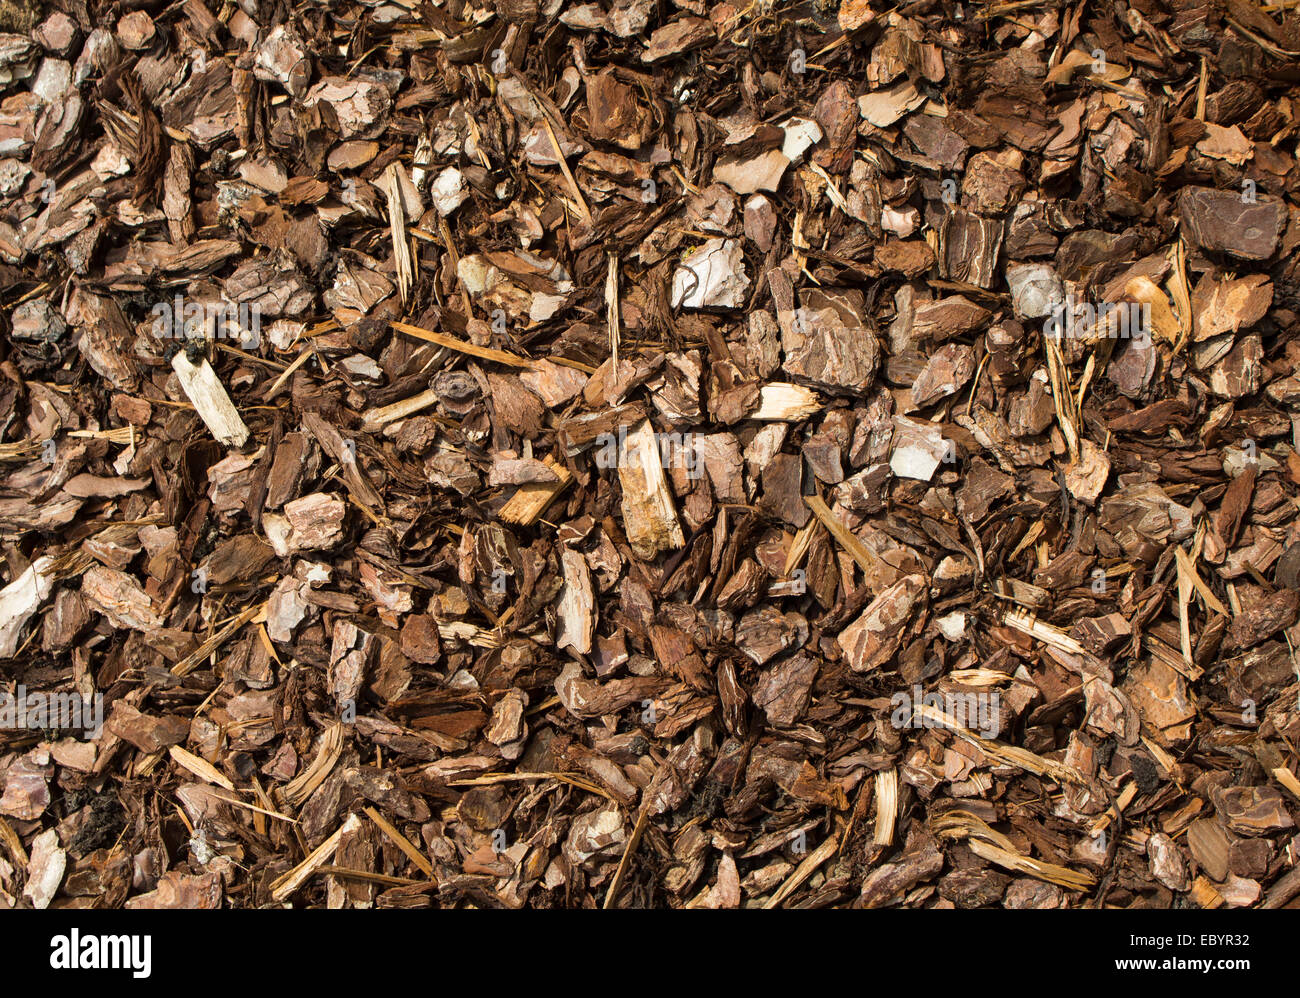 woodchips commonly used in landscaping and gardening projects. - Woodchips Commonly Used In Landscaping And Gardening Projects Stock